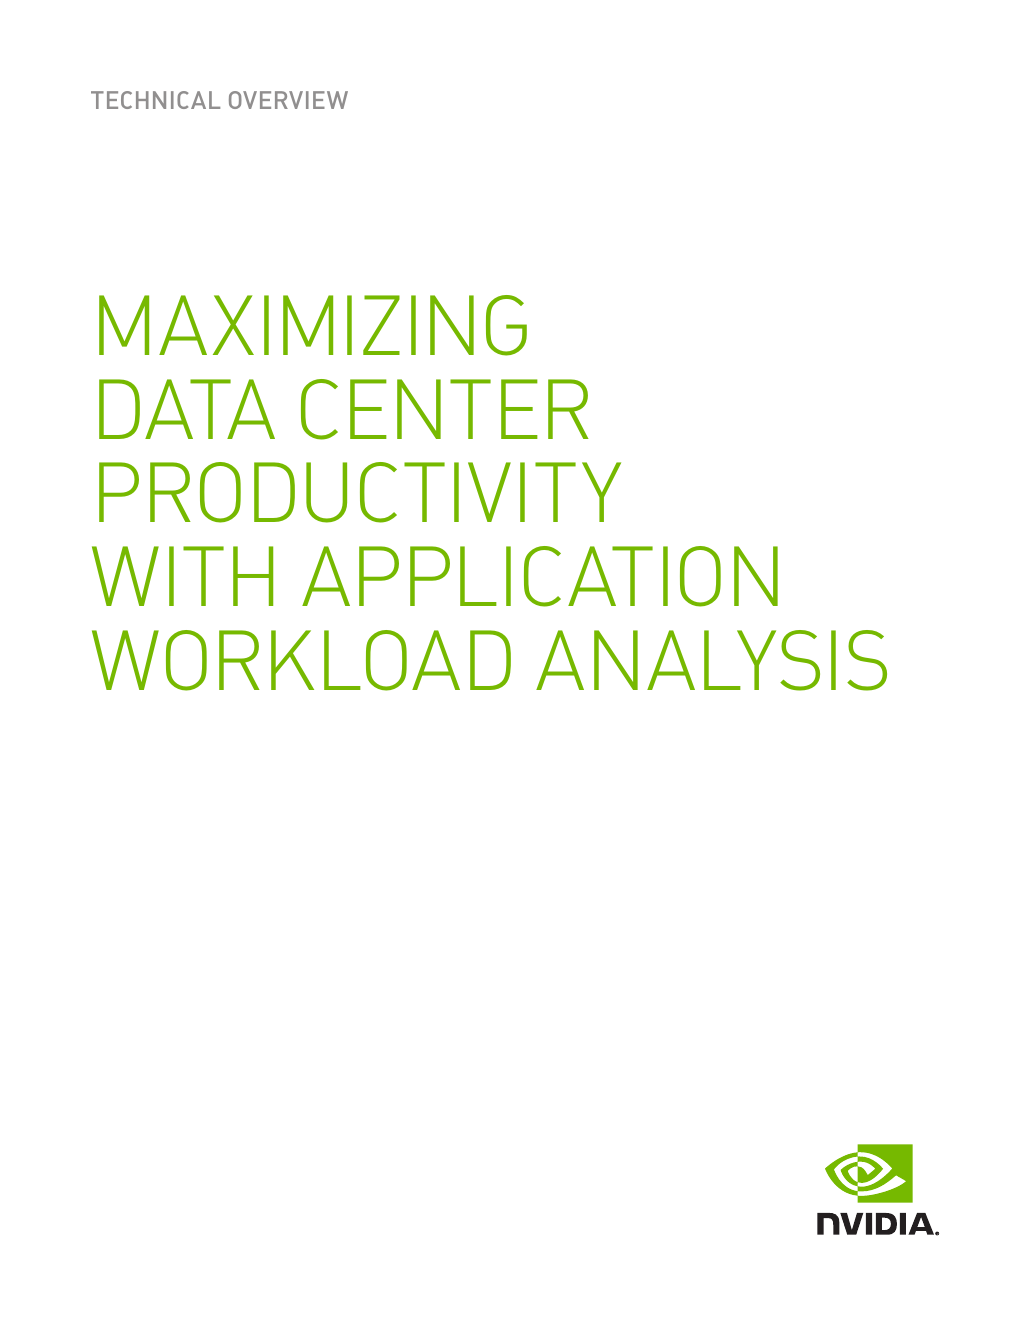 Technical Overview] Maximizing Data Center Productivity With